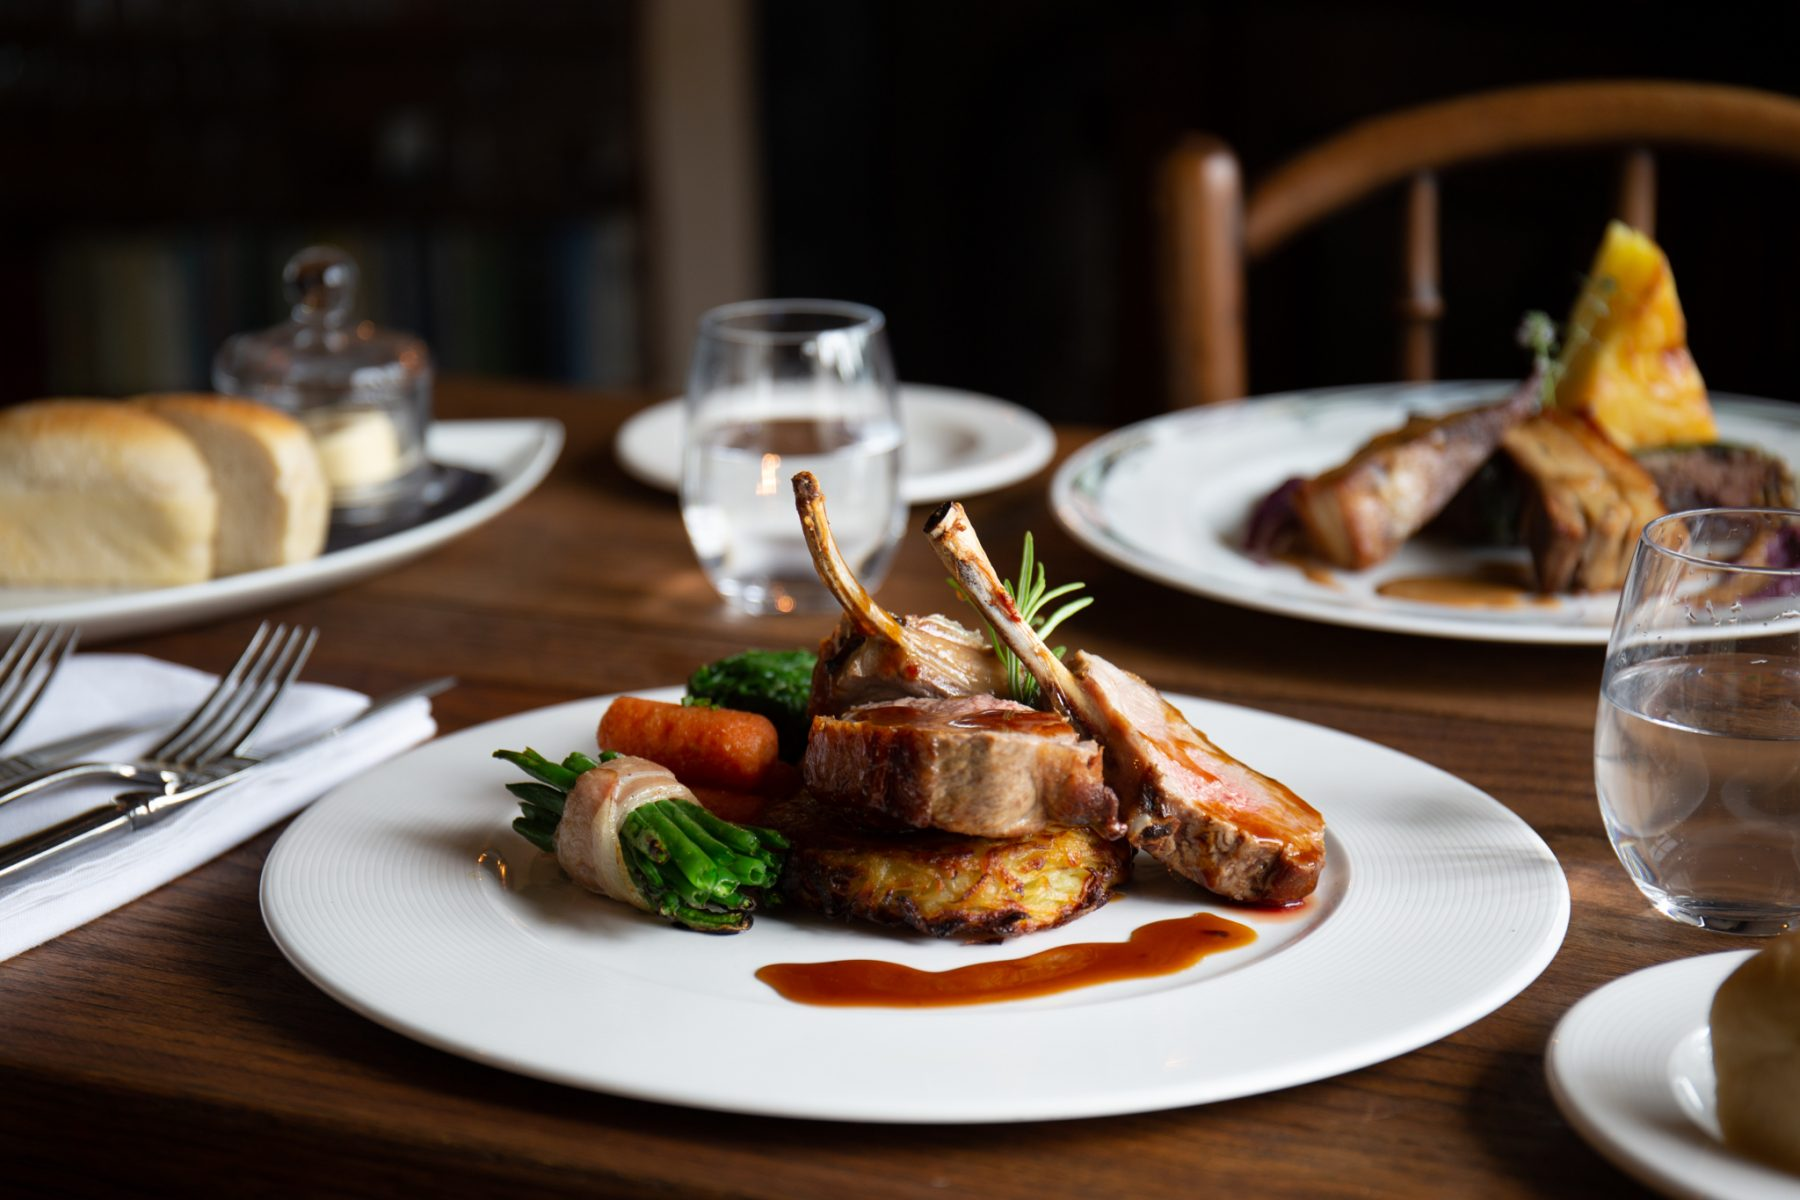 A main course dish from The Old Post in Chesterfield - brand photography